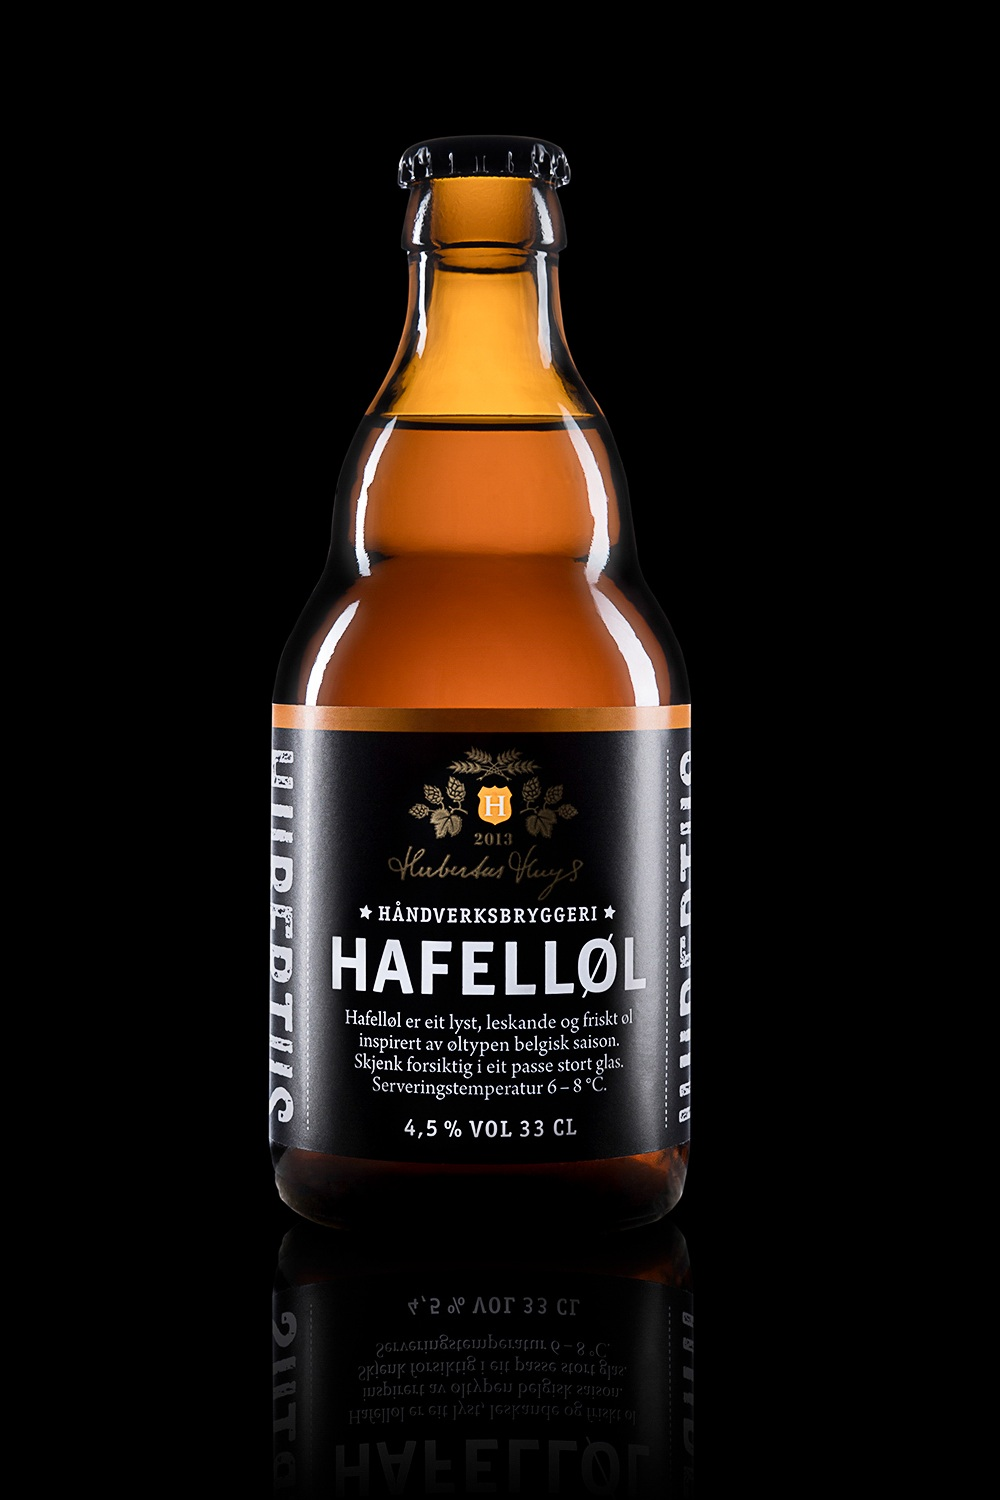 Hafelløl - Type: Inspired by Belgian saison.Color: Blonde.Aroma: Malt, hops and complex fruits.Flavor: Fruity and fresh.Contents: Alcohol 4,5%.Food pairing: Spicy food, barbeque and fish.